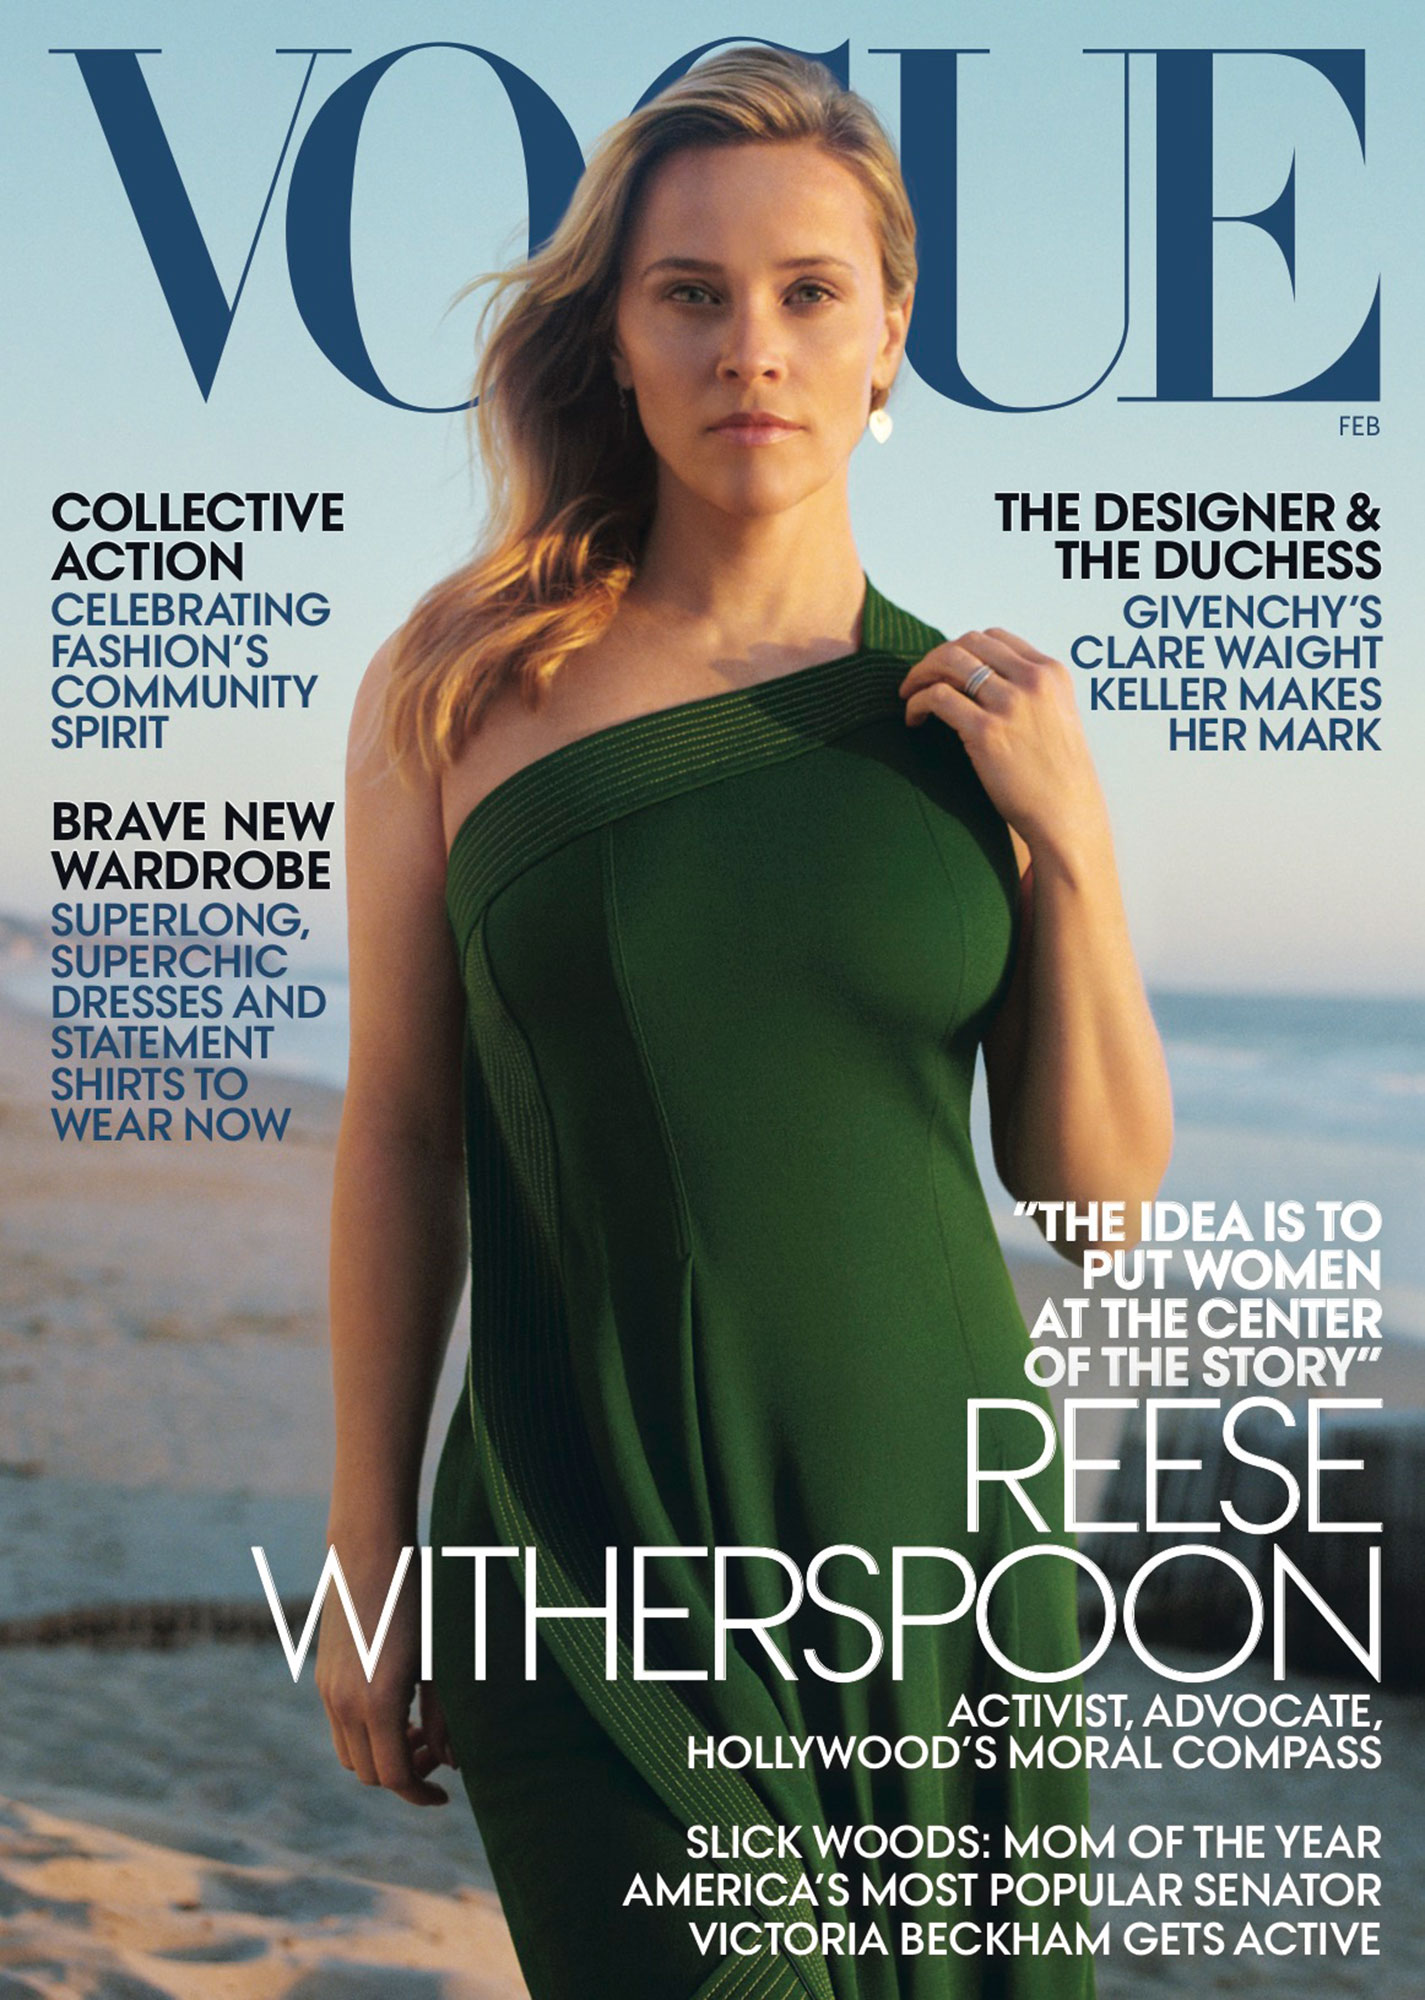 Reese Witherspoon Posed With Her Mom and Daughter on the February Cover of 'Vogue' - Reese Witherspoon on the cover of Vogue